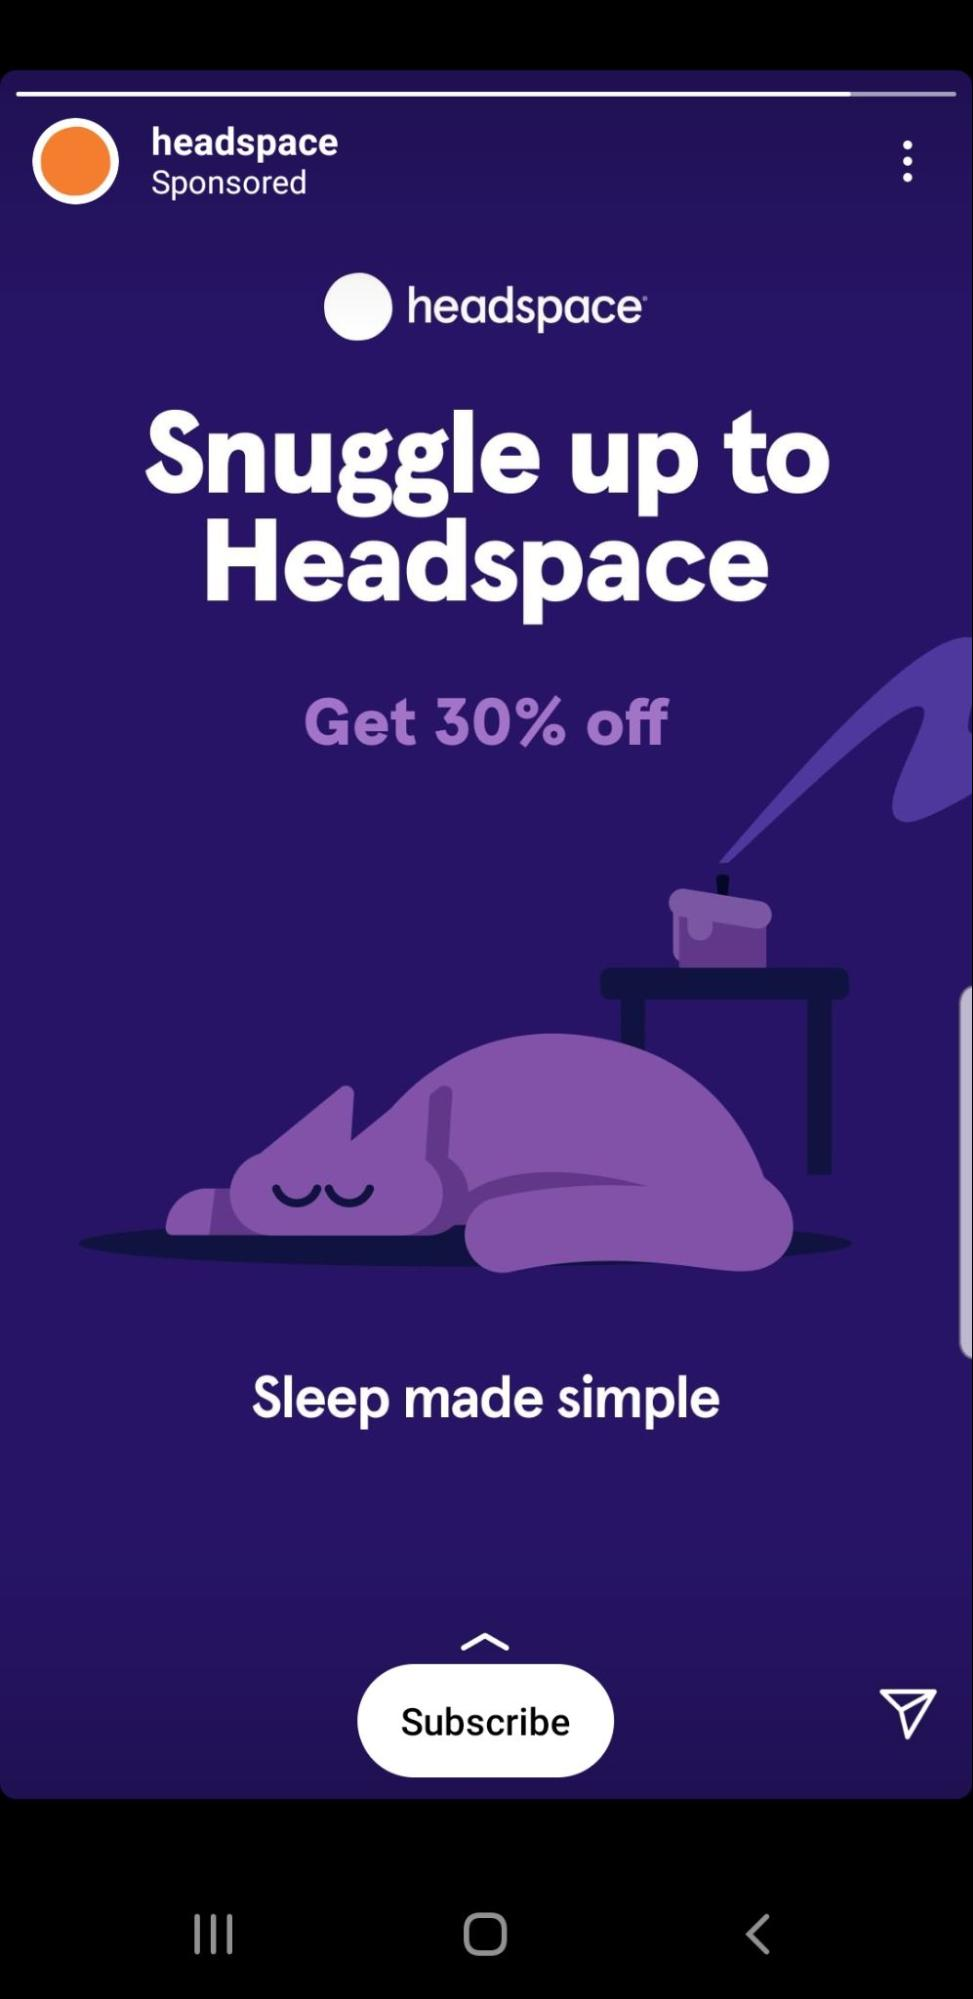 Headspace Instagram ad